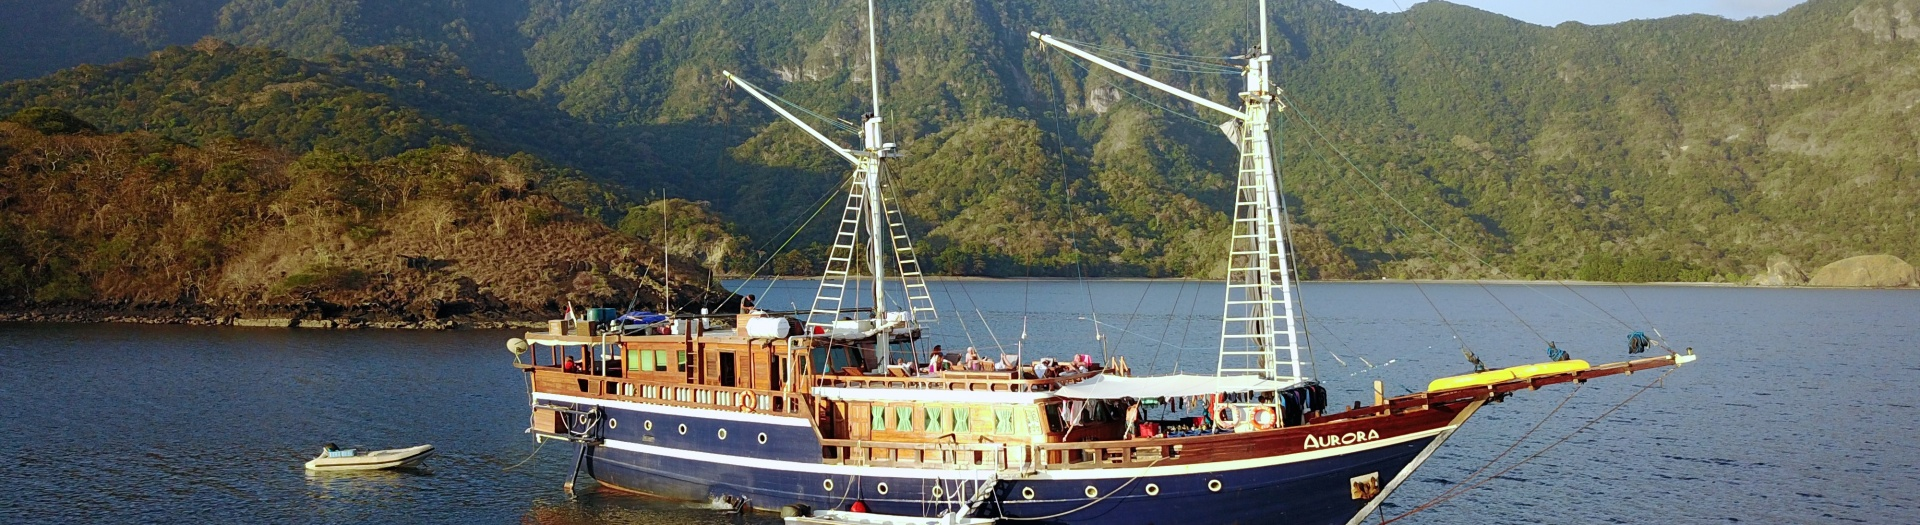 Amazing cruise in Komodo 8 nights (Labuan Bajo - Labuan Bajo)